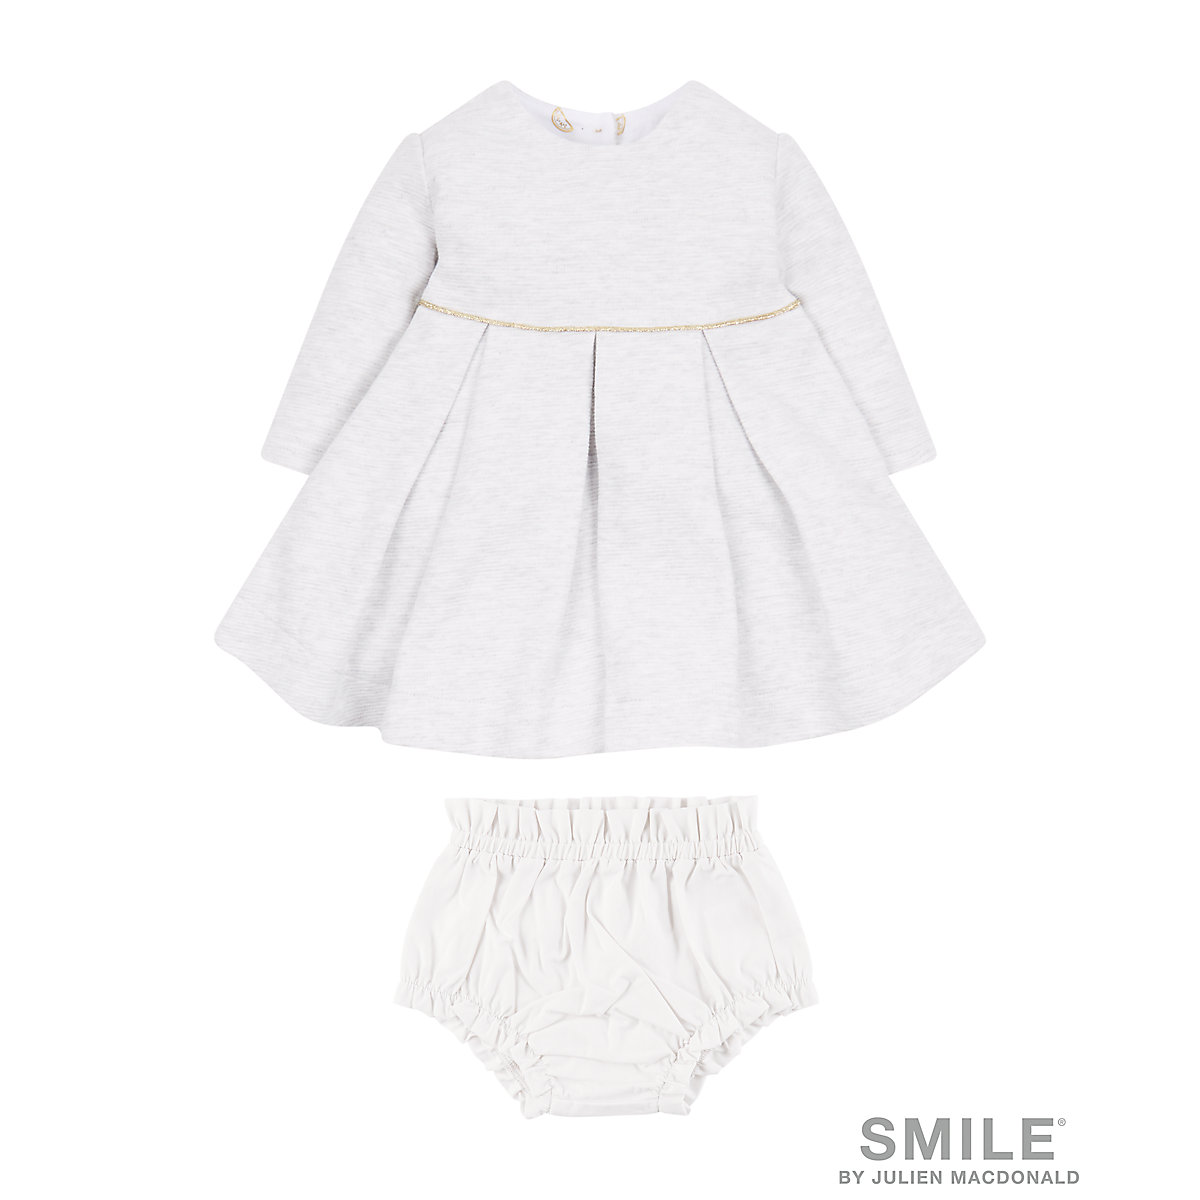 SMILE By Julien Macdonald Grey Dress And Knickers